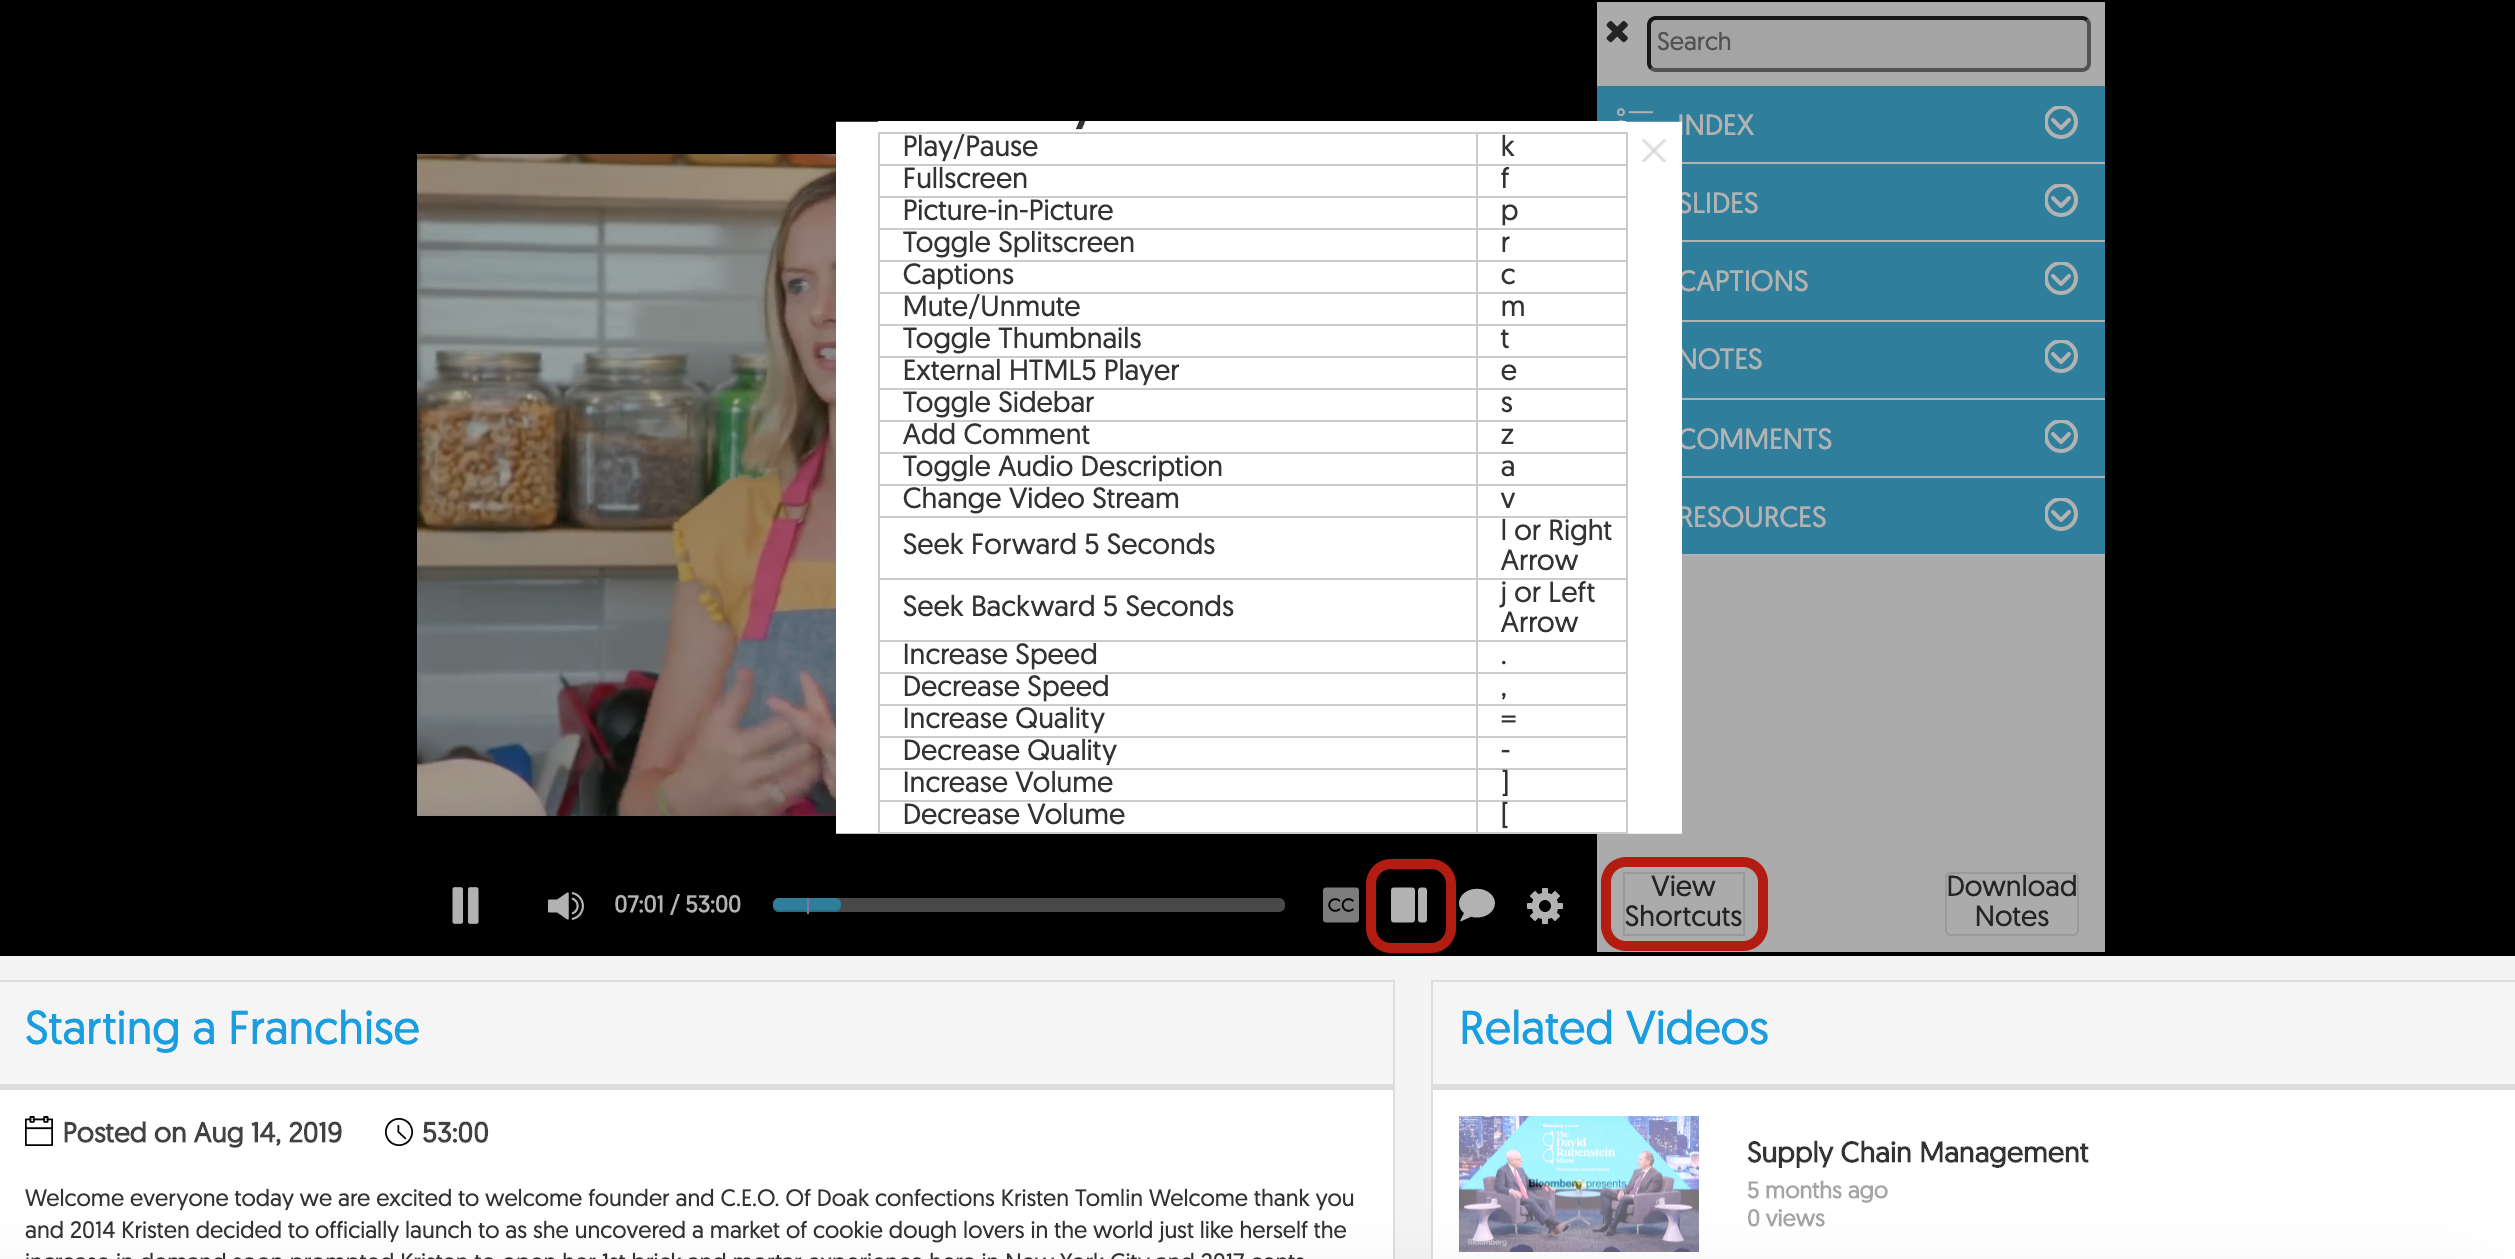 Hot Key List for YuJa Media Player